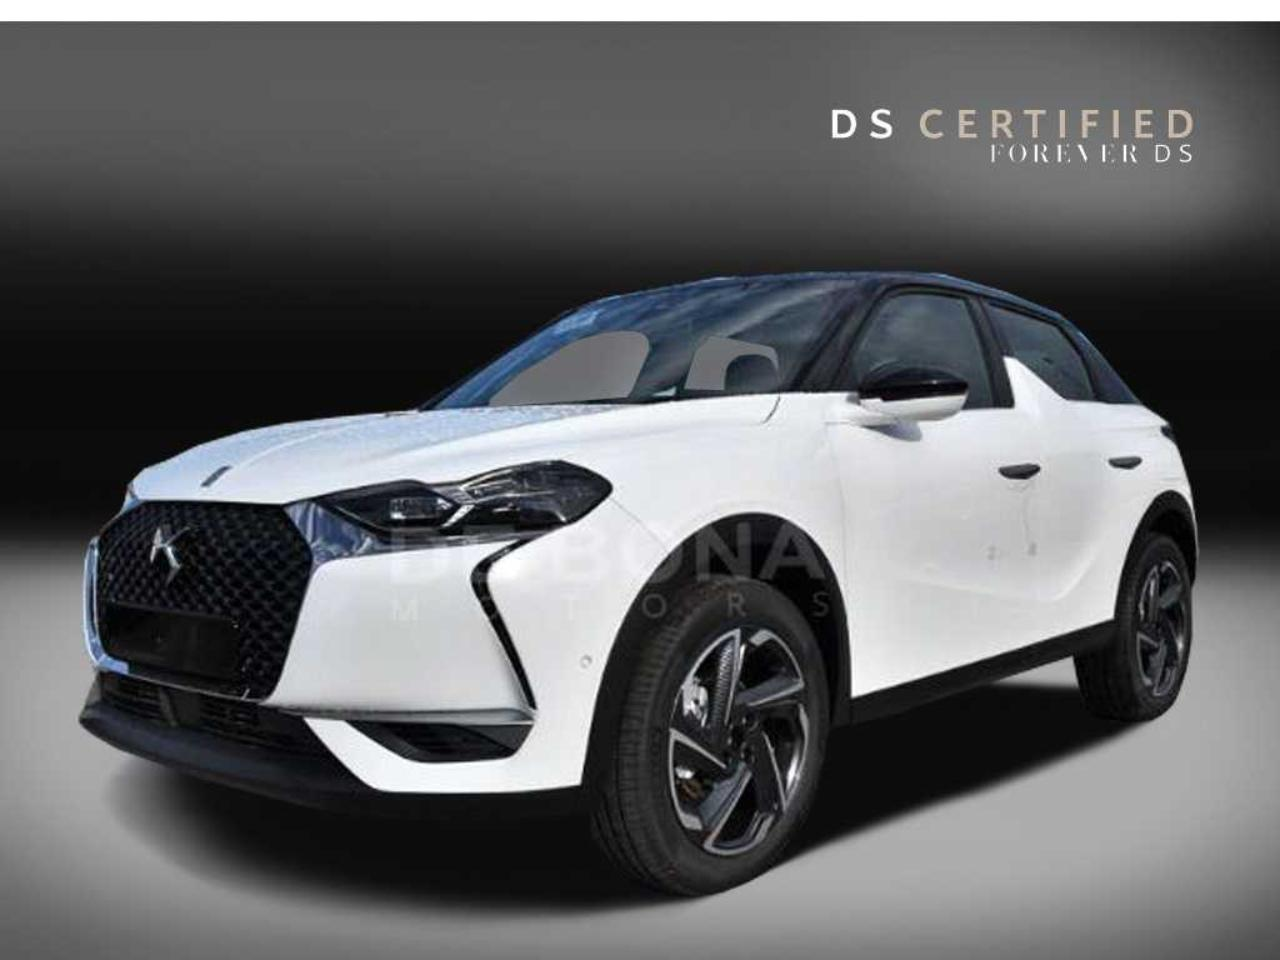 Ds DS 3 Crossback 1.5 bluehdi Business 100cv